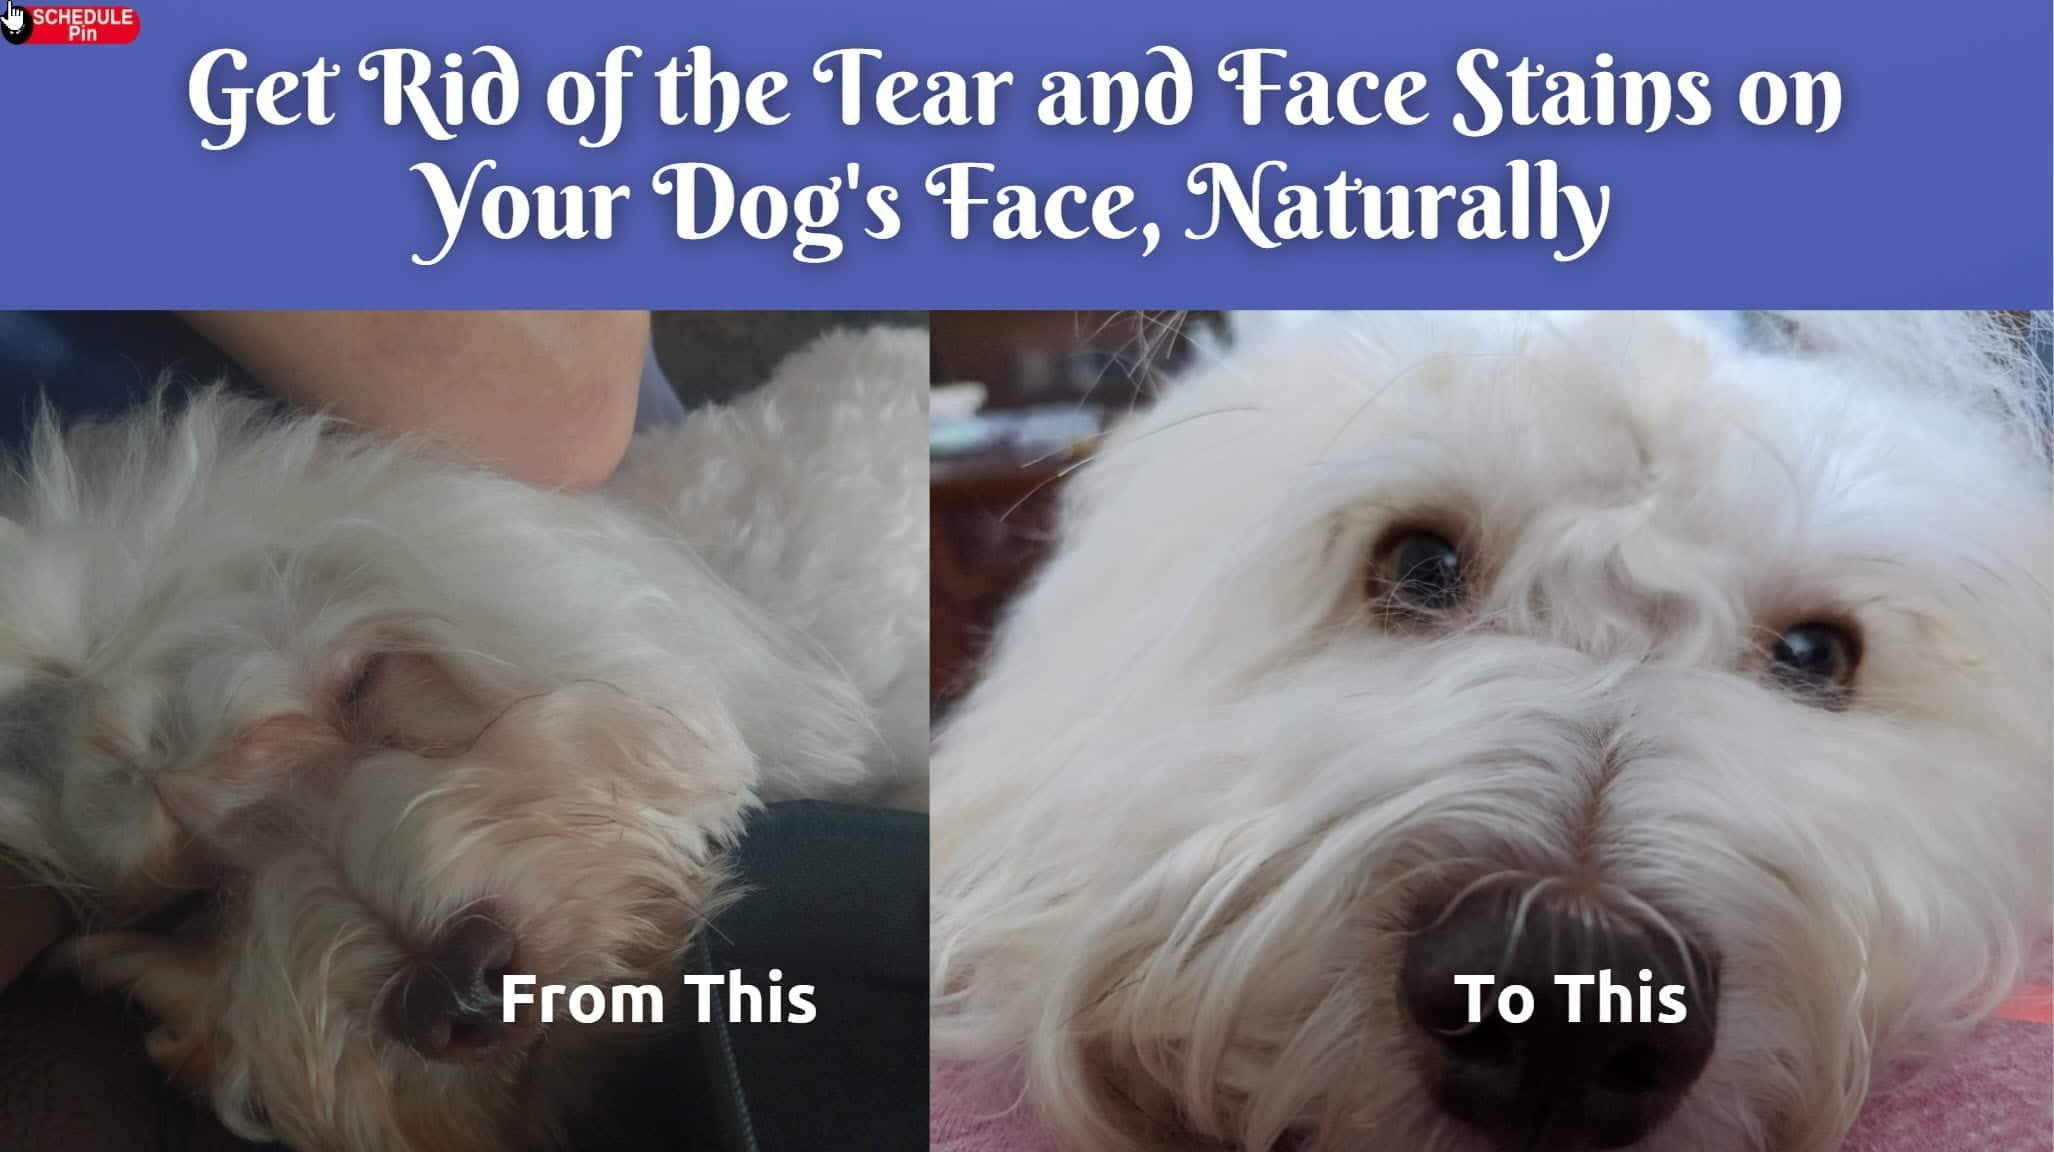 Tear Stains on Dogs Face - Get Rid of Red Stains On White Dogs Face - Dr.DarHawks 2020-11-22_11-12-29